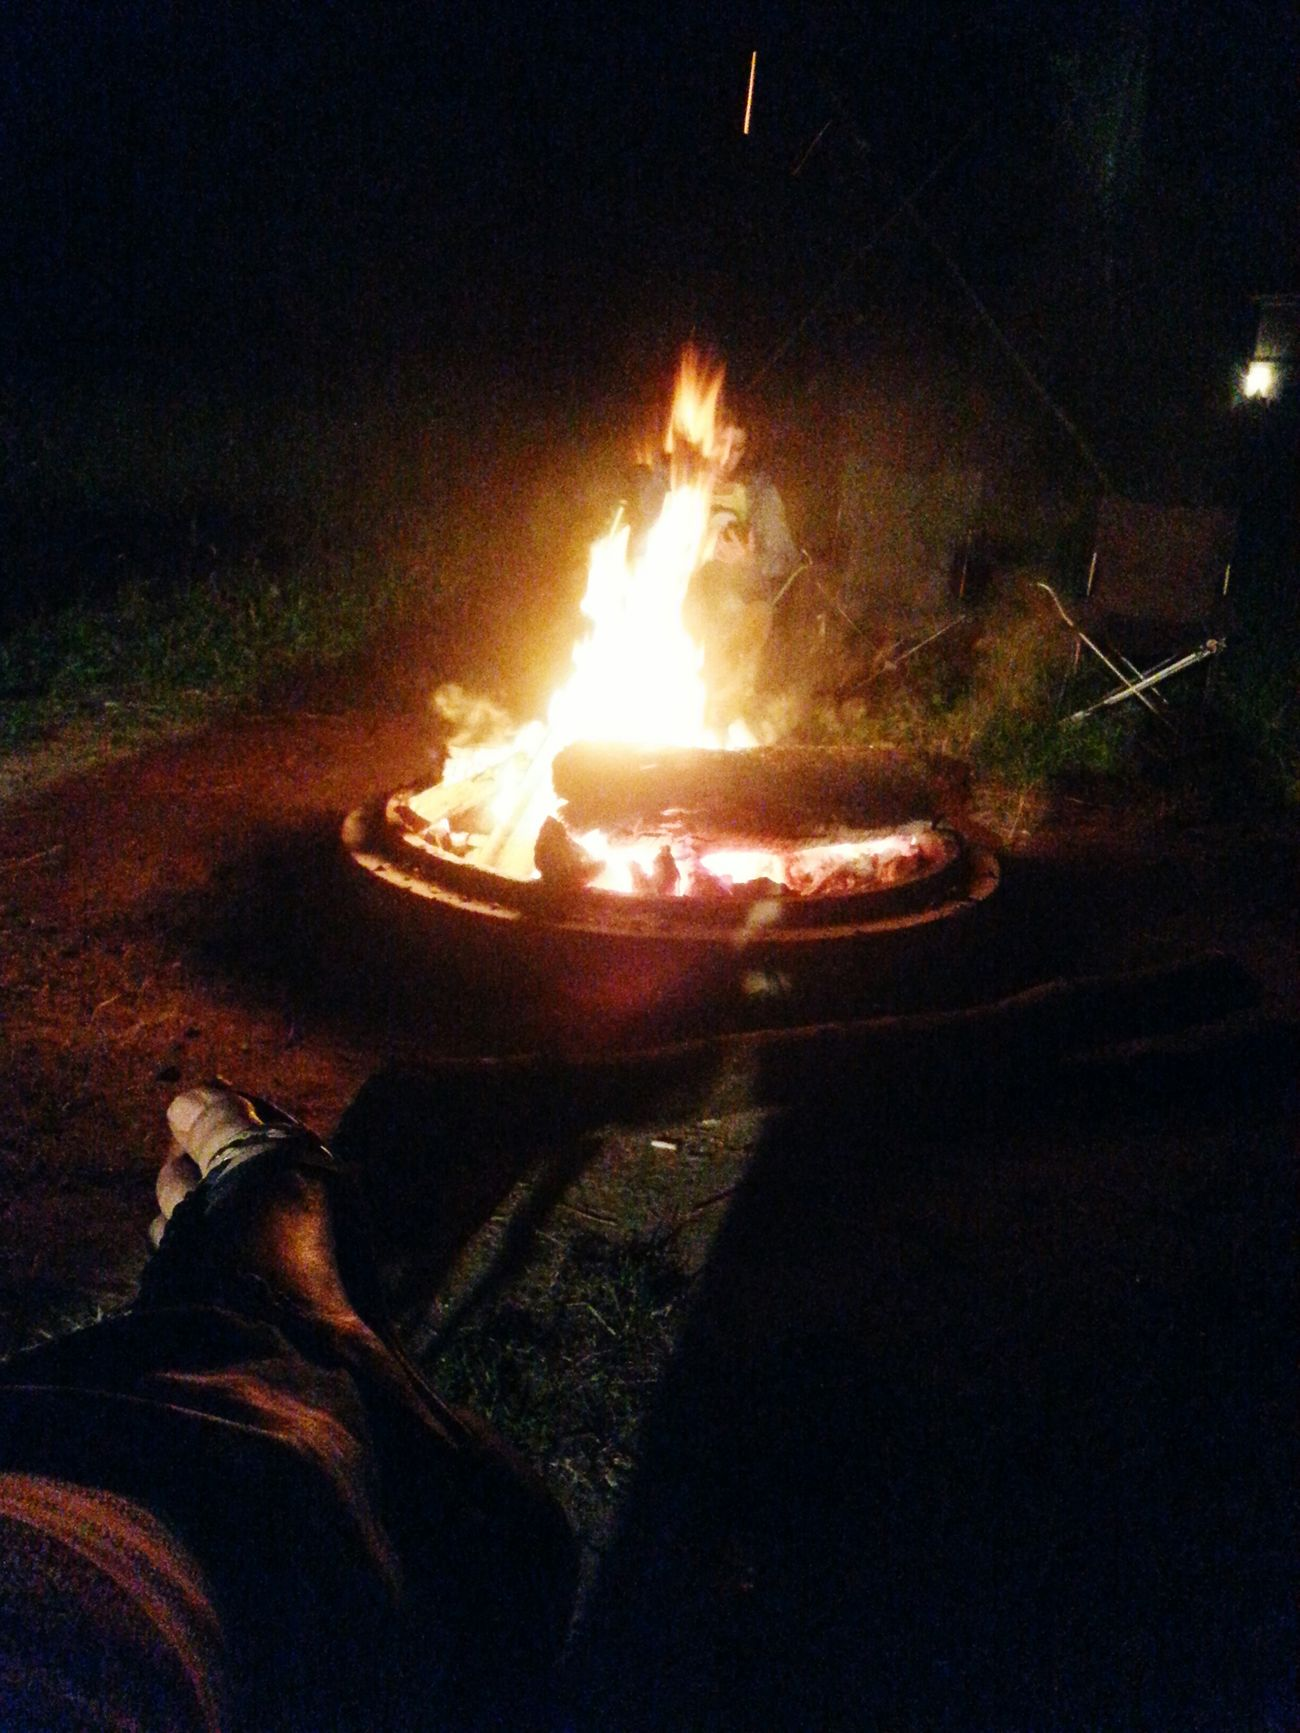 SummerNights Fire Having Fun Friendship <3